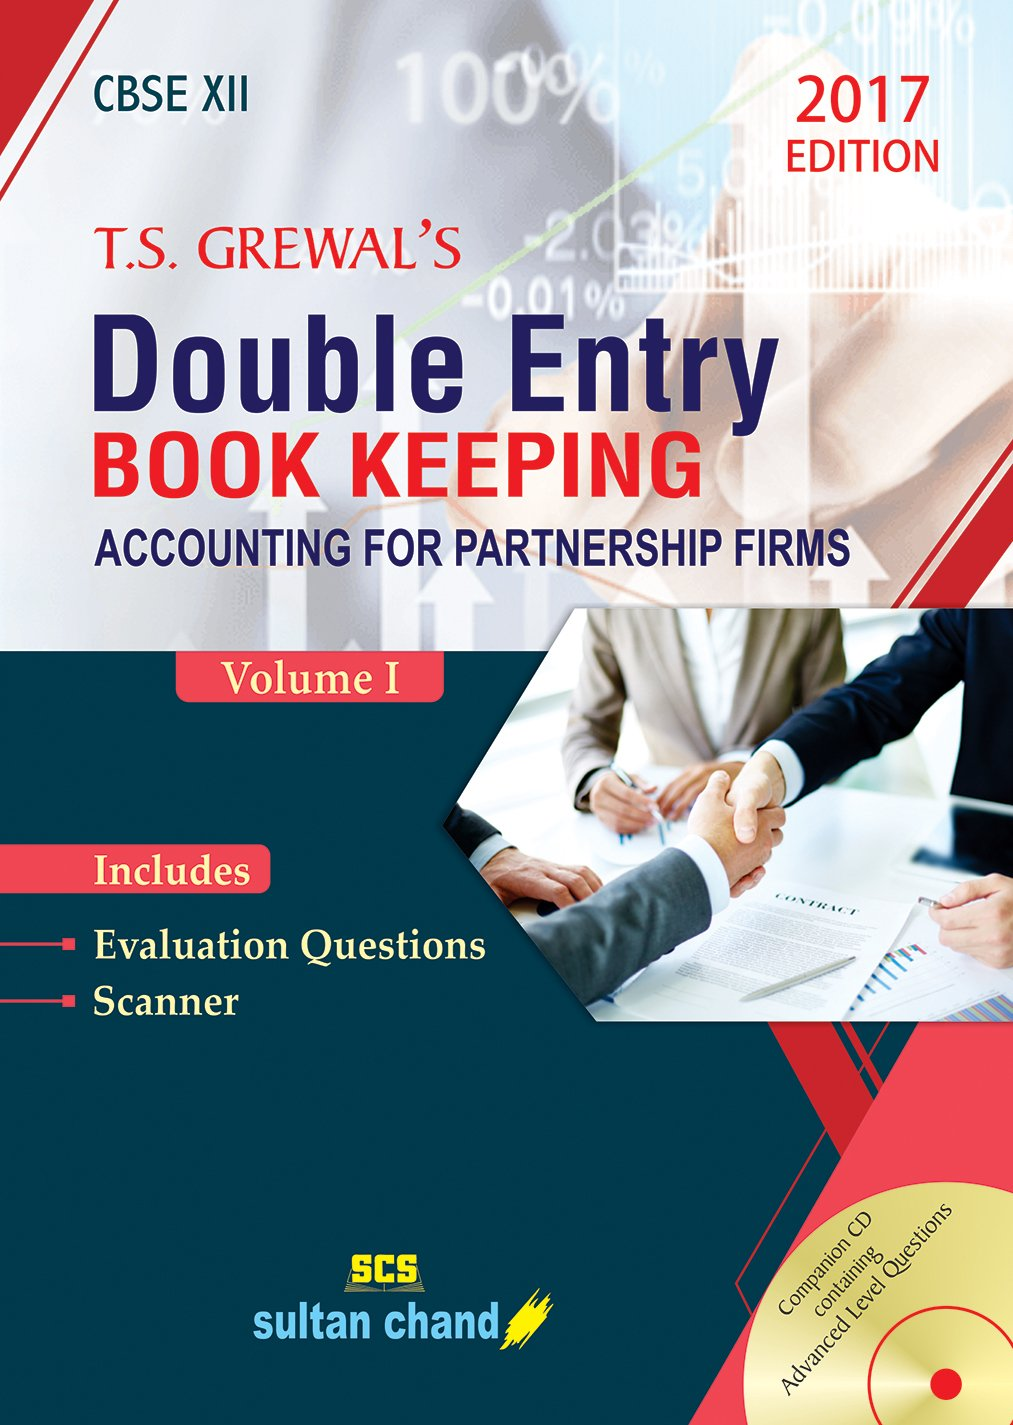 Ts grewals double entry book keeping cbse xii vol 1 ts grewals double entry book keeping cbse xii vol 1 accounting for partnership firms old edition amazon ts grewal hs grewal gs grewal fandeluxe Images